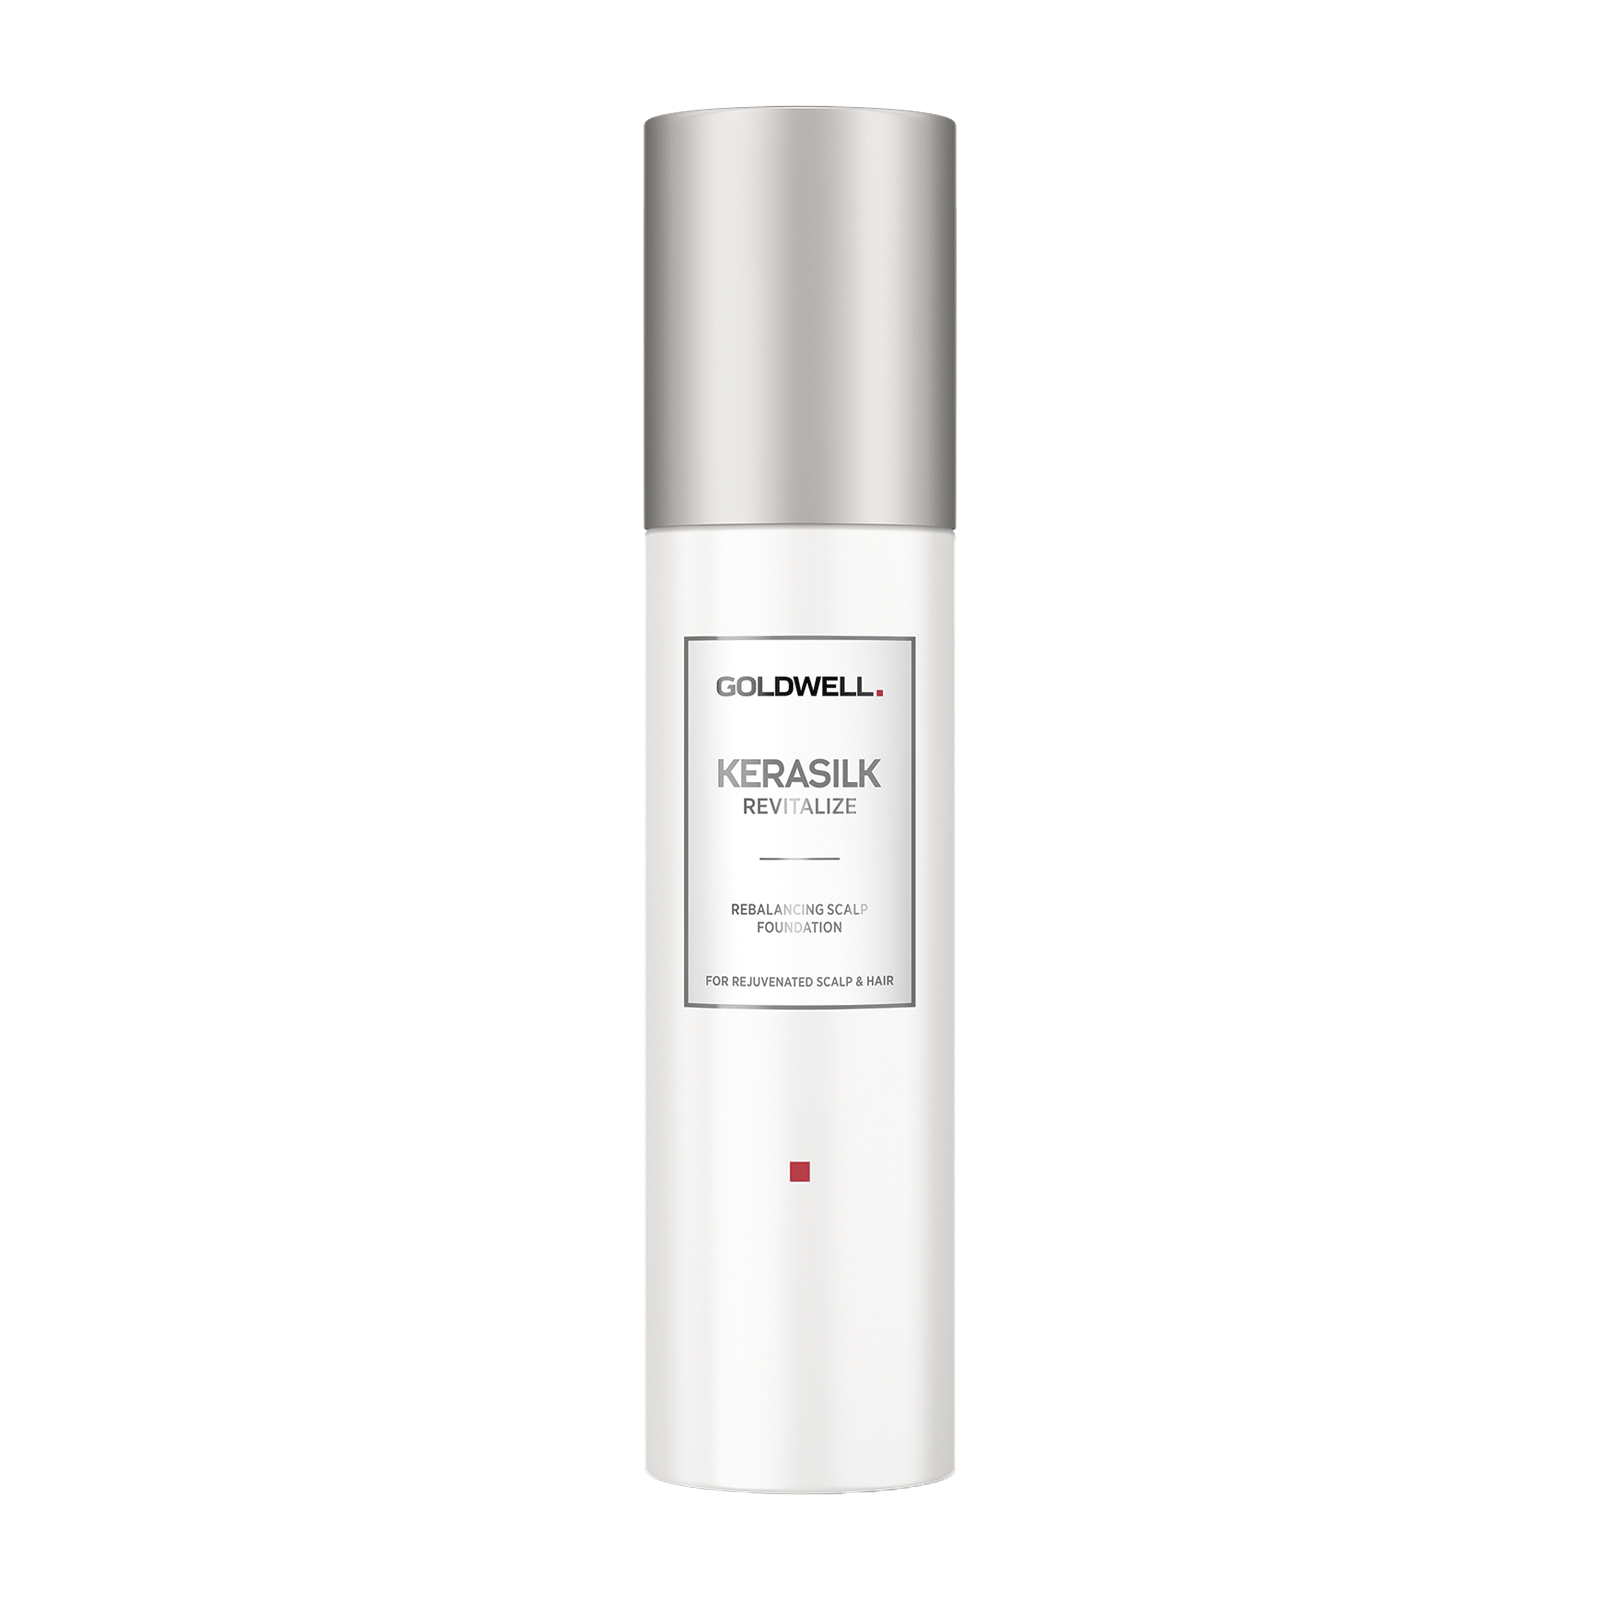 Kerasilk Revitalize Rebalancing Scalp Foundation